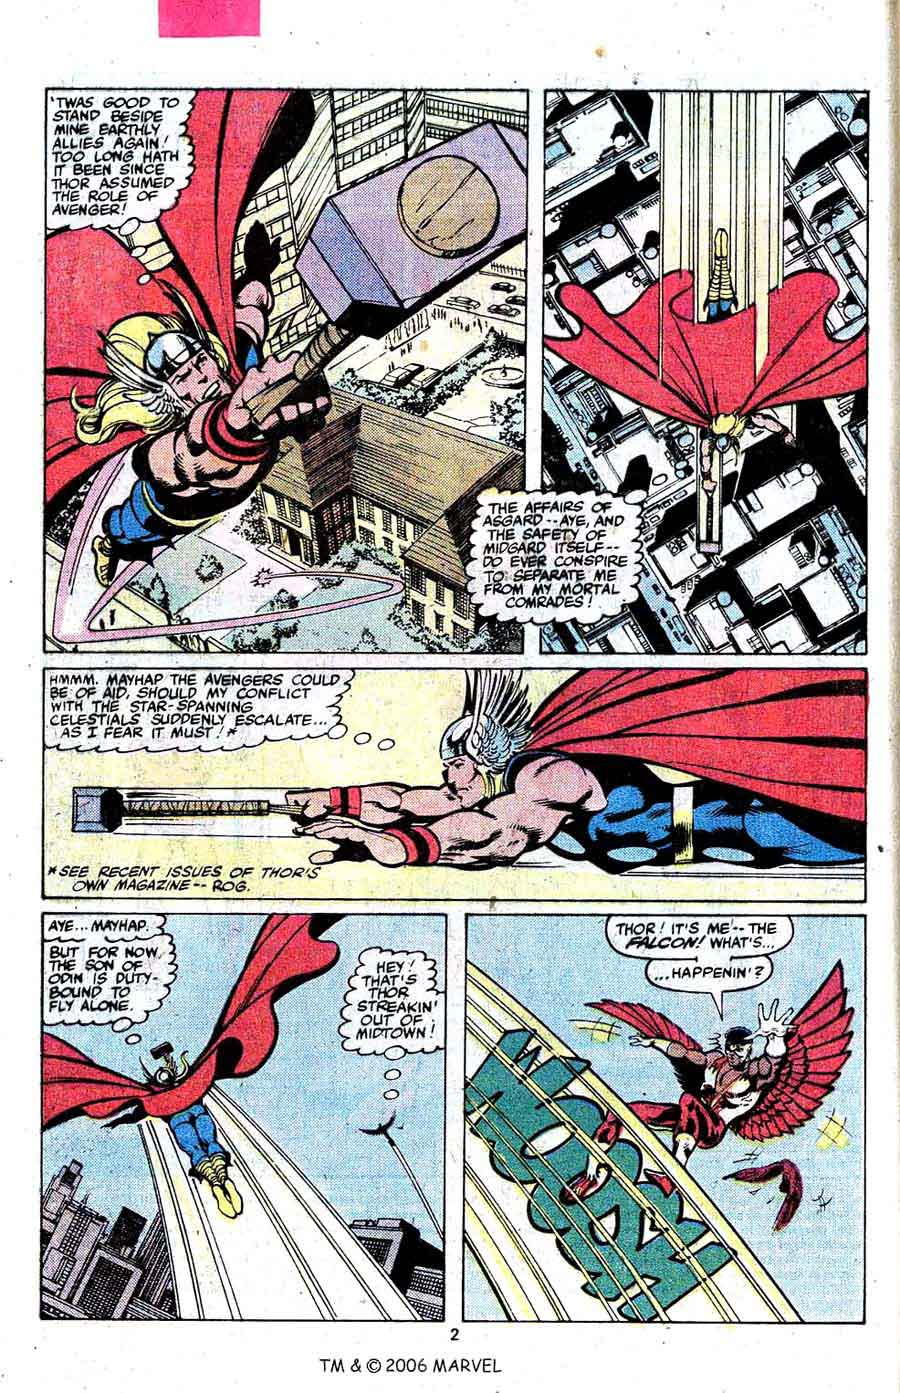 Avengers #189 marvel 1970s bronze age comic book page art by John Byrne